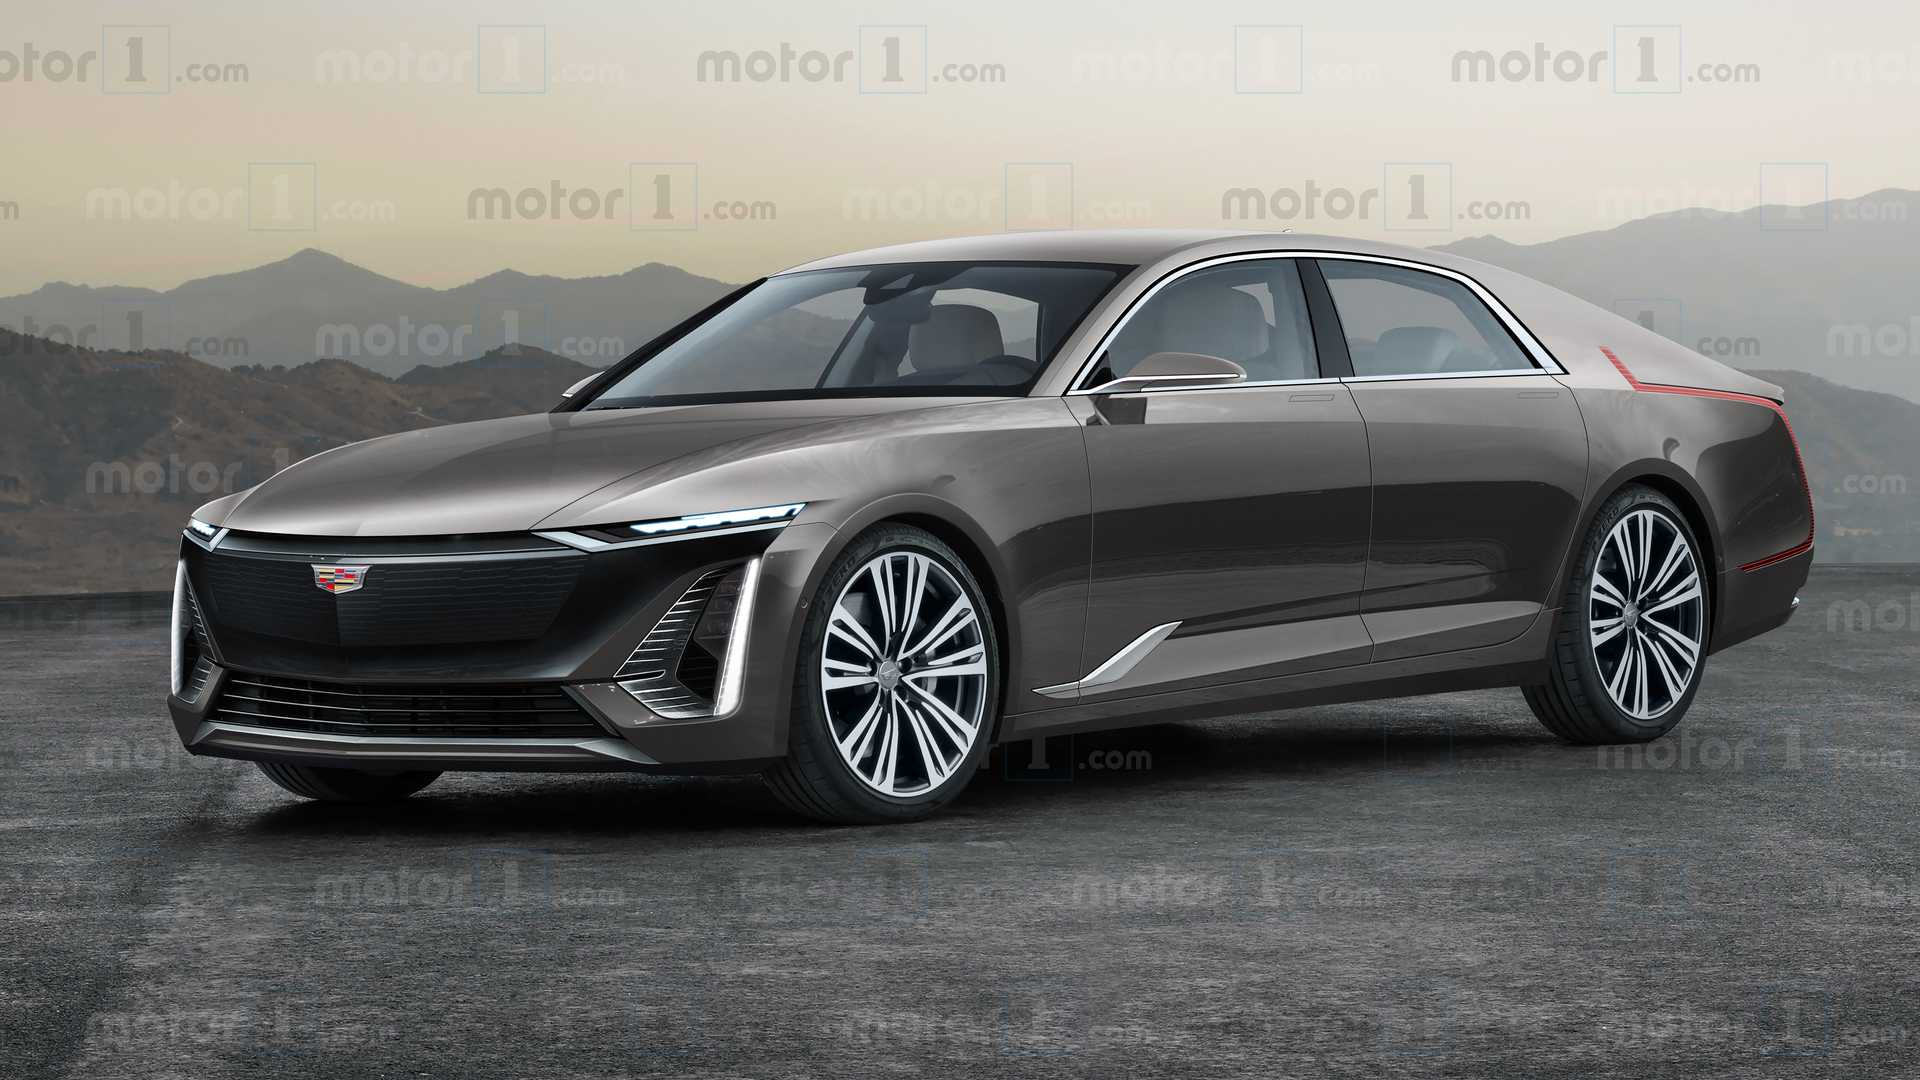 Cadillac Celestiq Debuting This Summer: Report